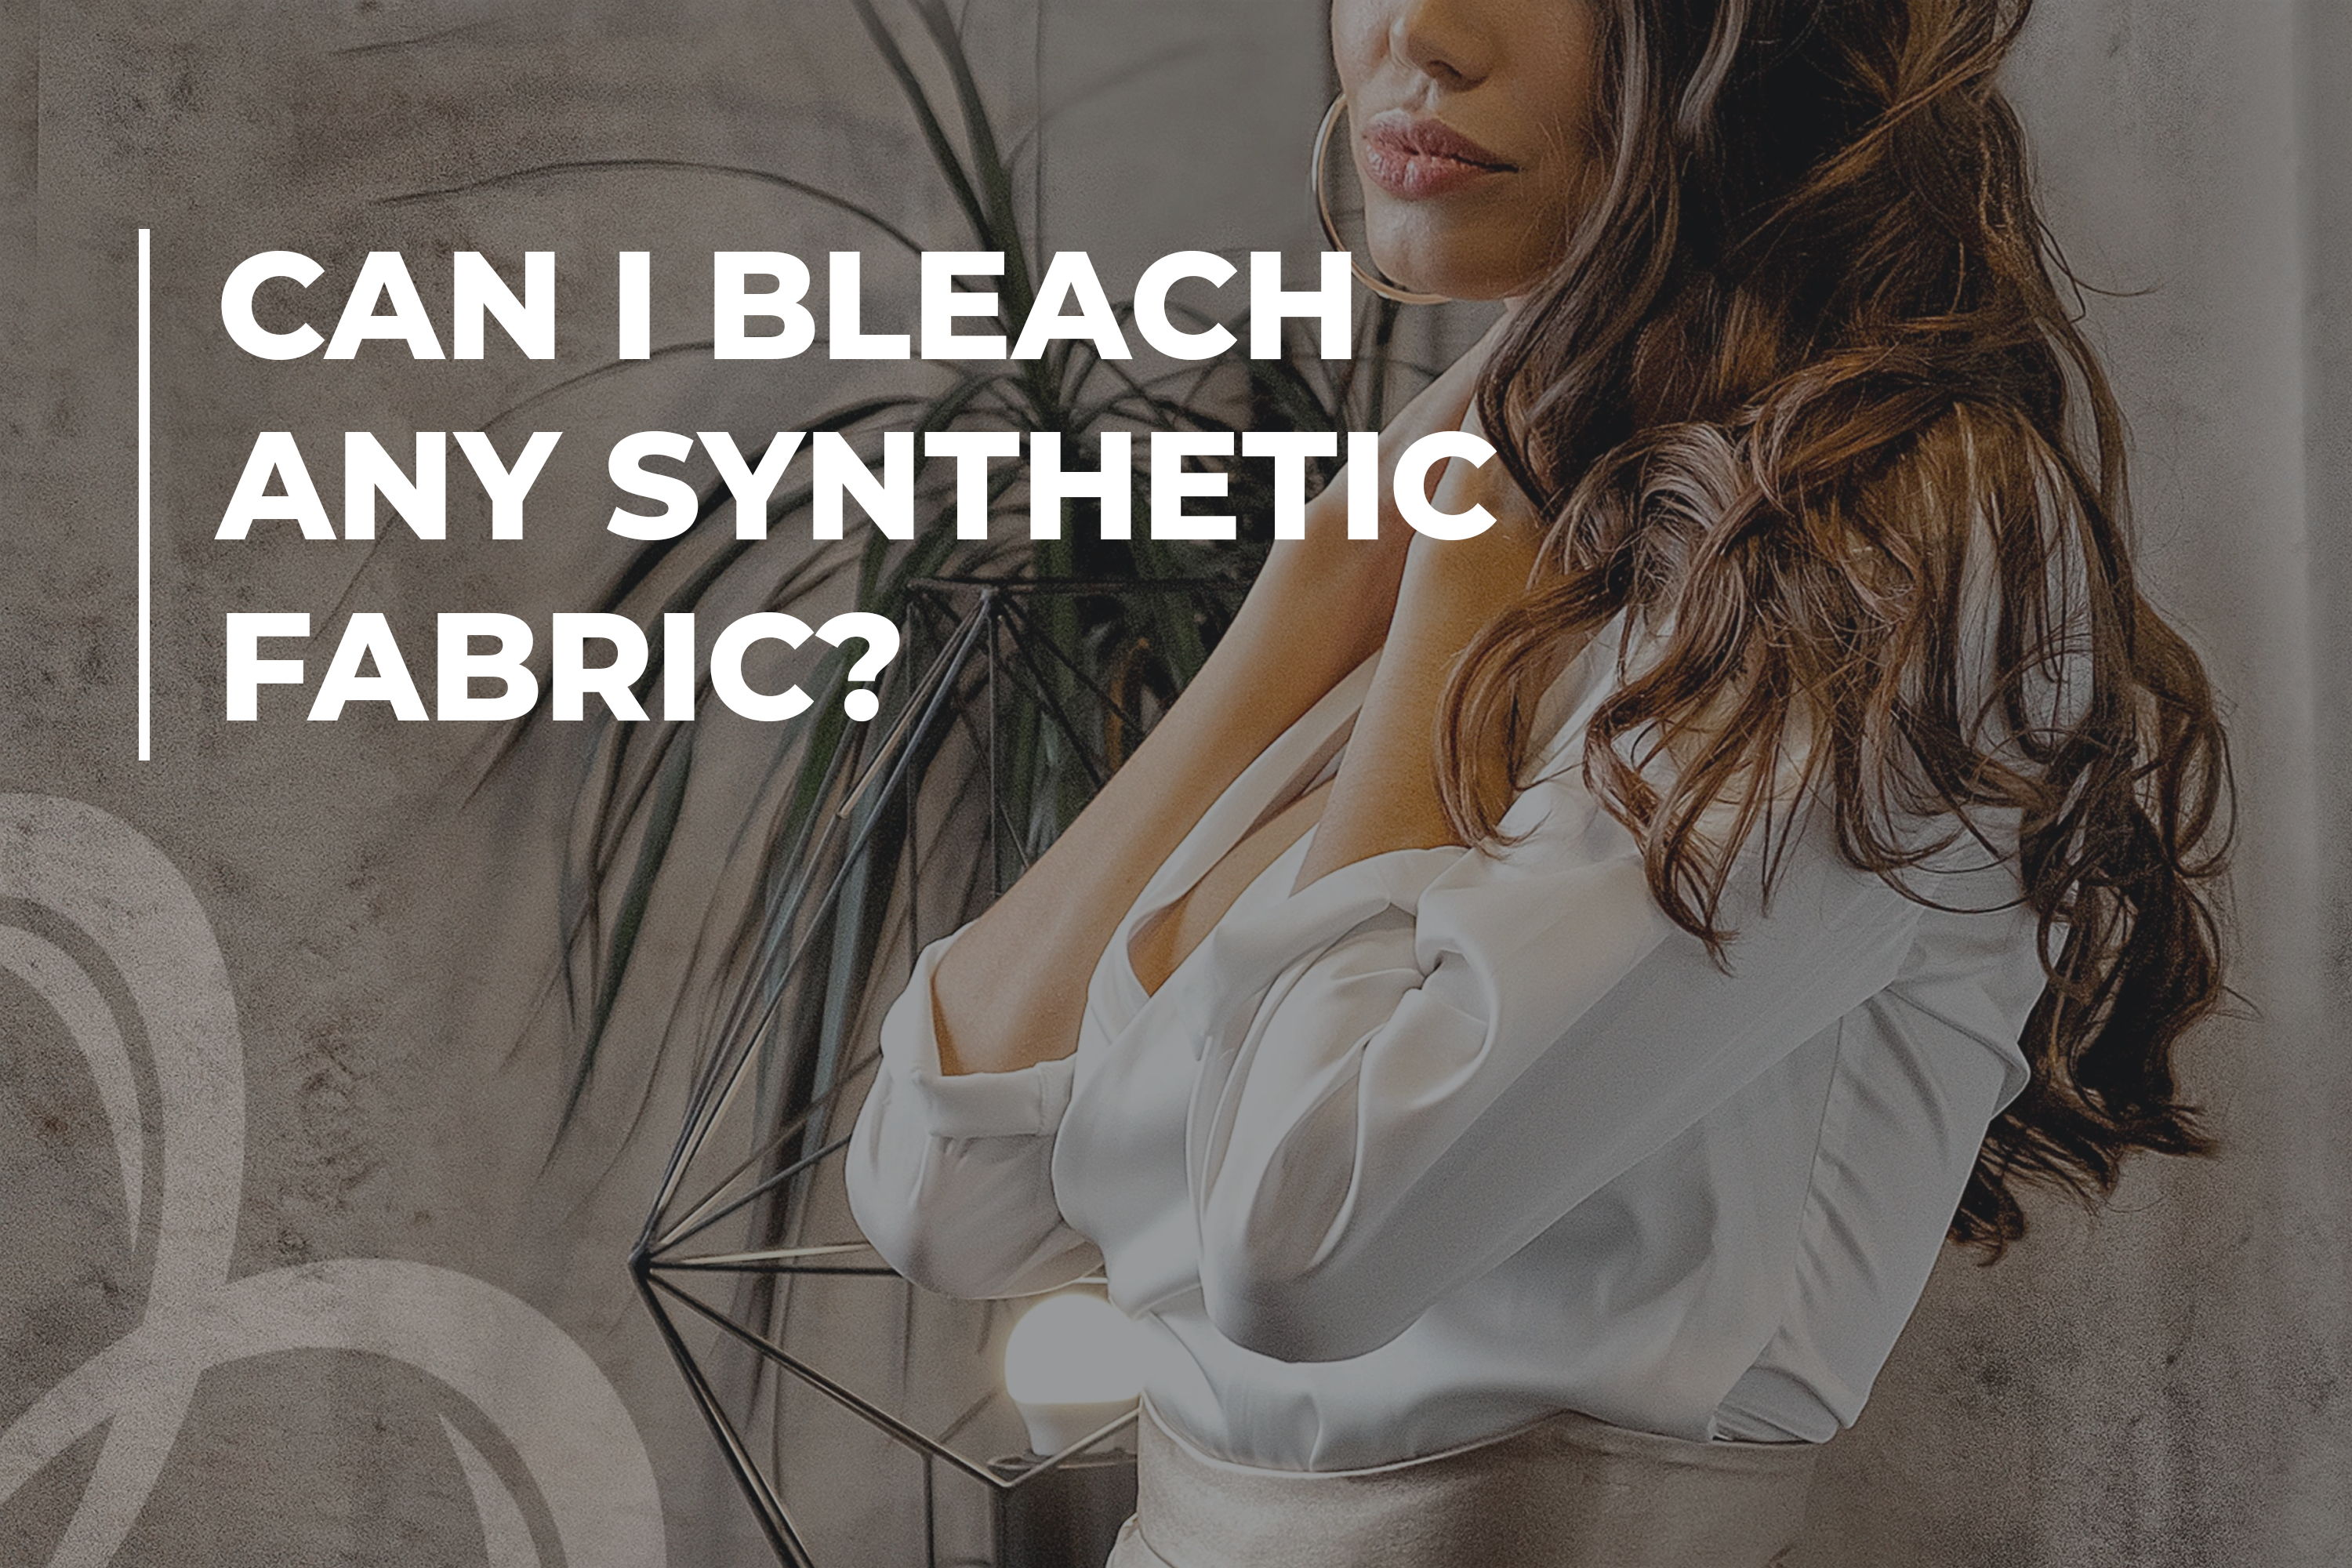 Can I bleach any synthetic fabric